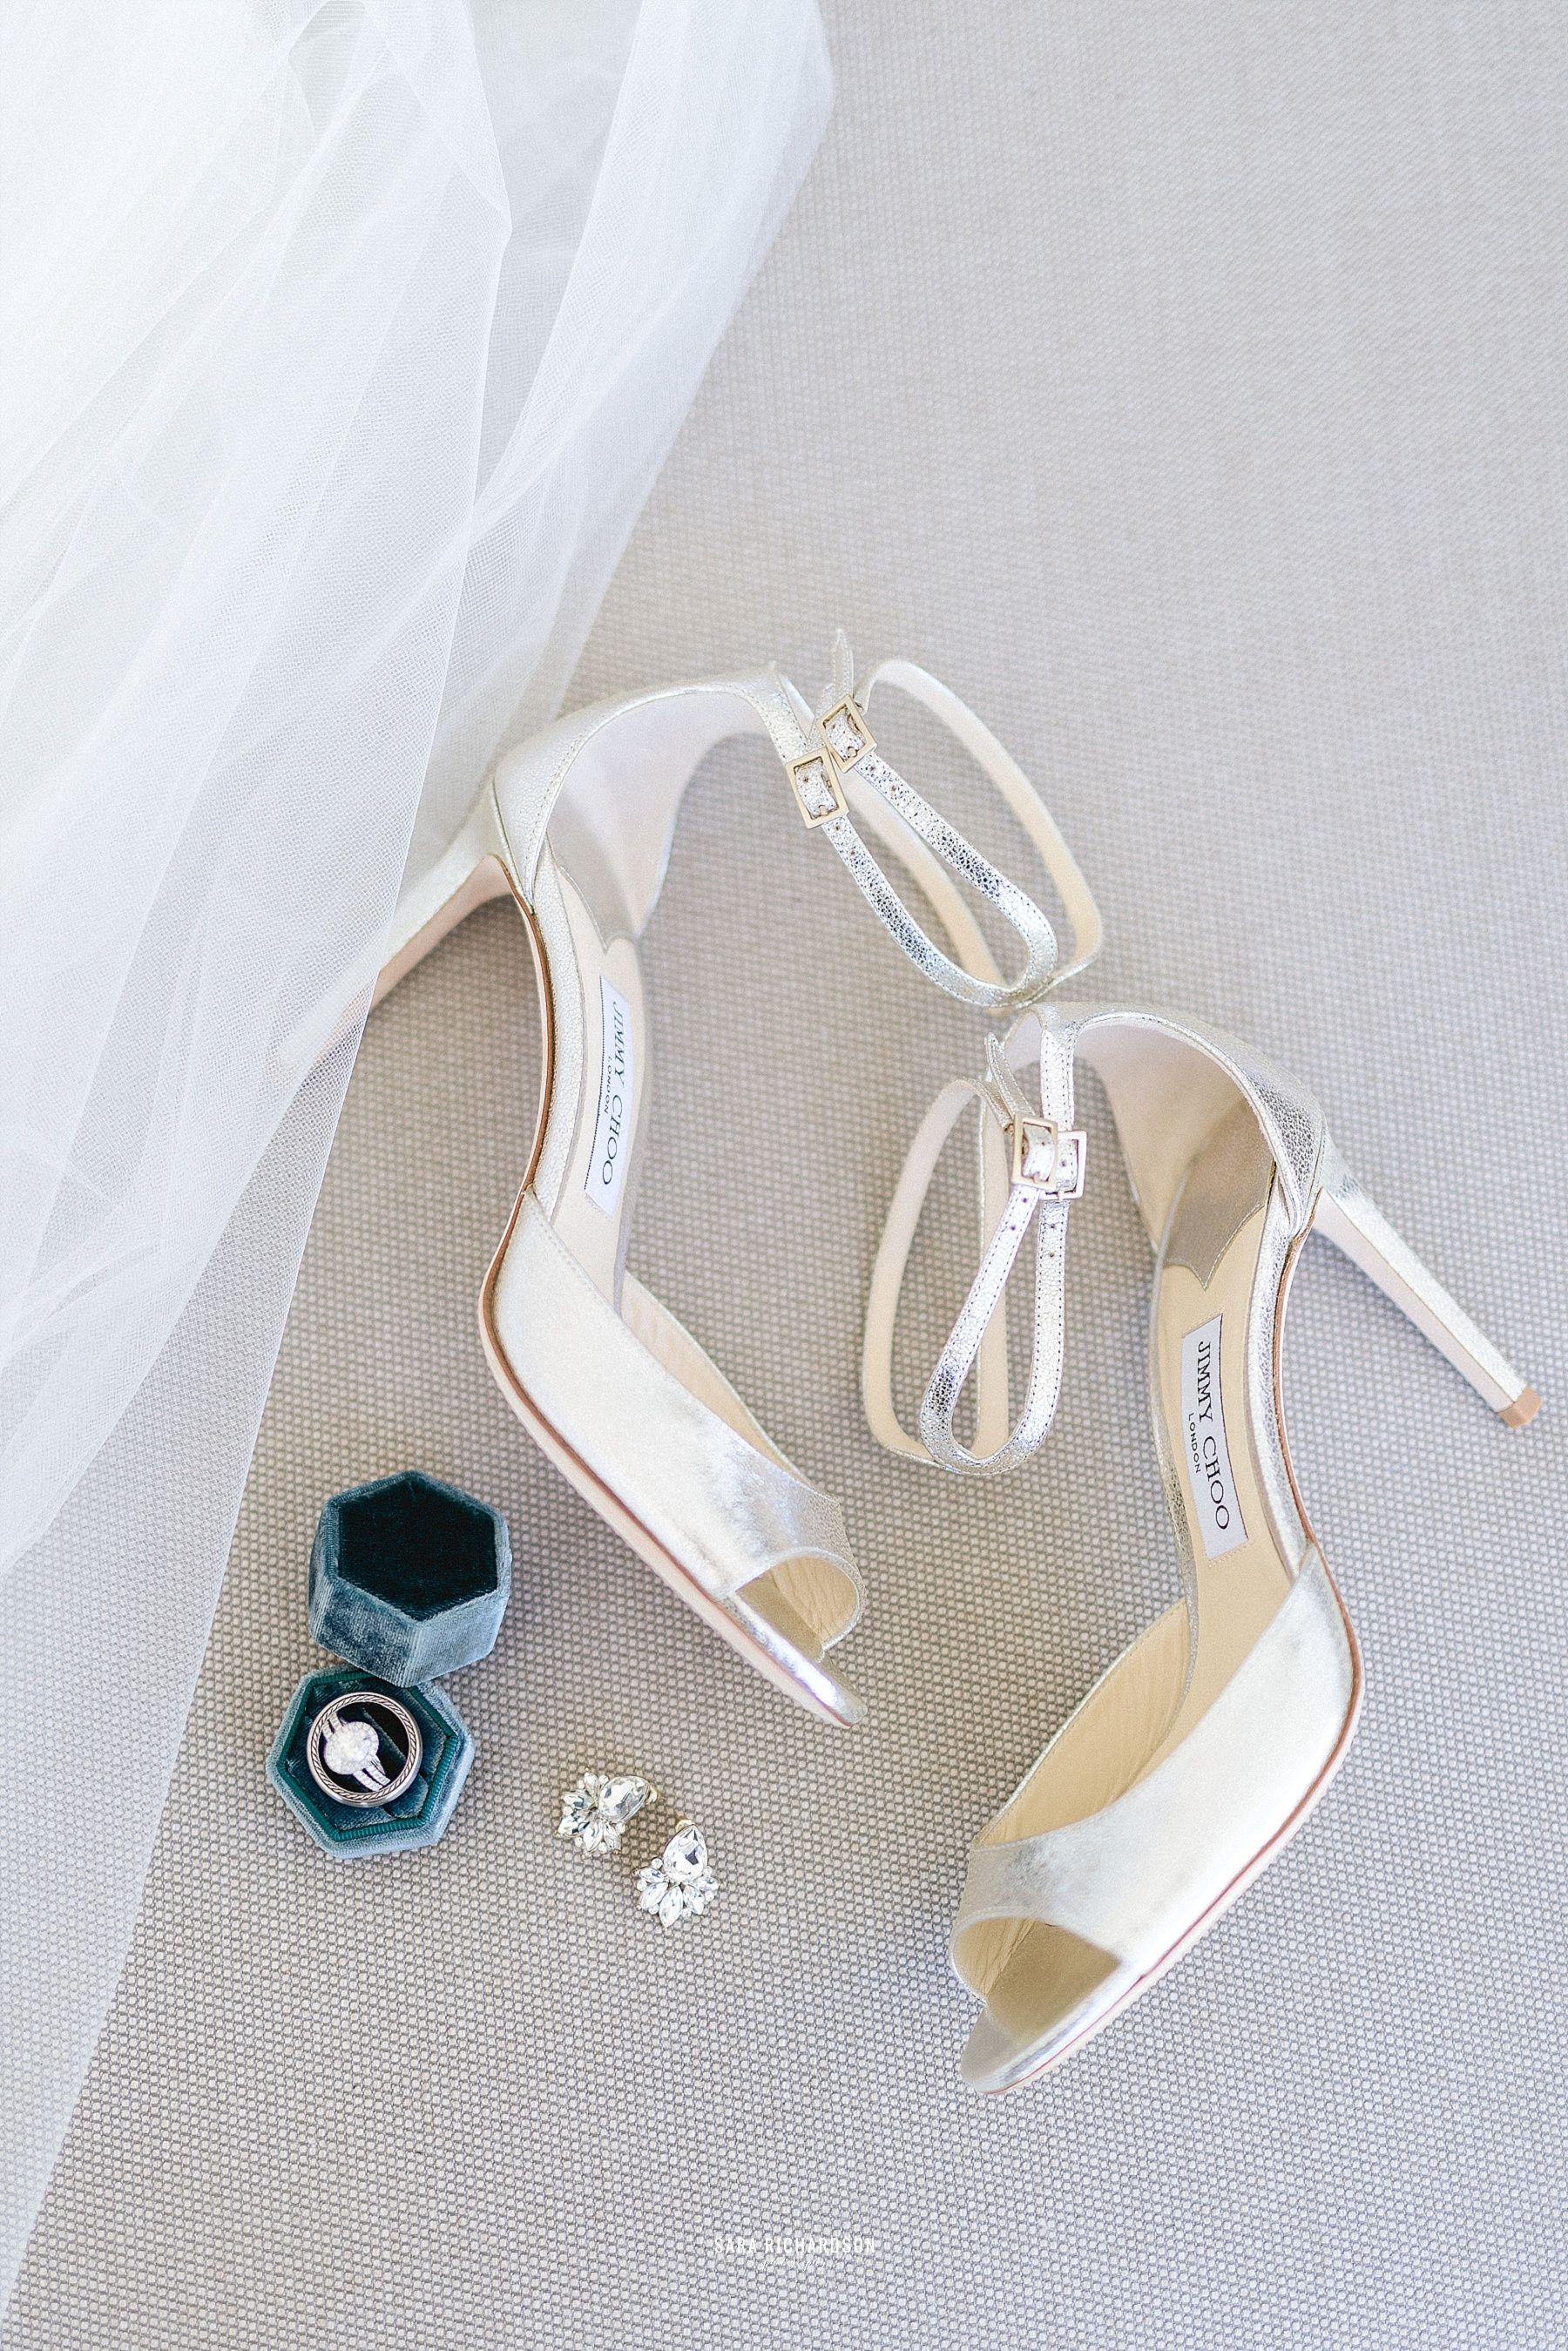 Our Bride Sara, from Scottsdale Arizona, decided to go with Jimmy Choo for her Wedding Shoes. Rocking a Cartier Wedding band, she looked stunning for her groom to be. We were so excited to be part of a such a special Briode's Wedding day!